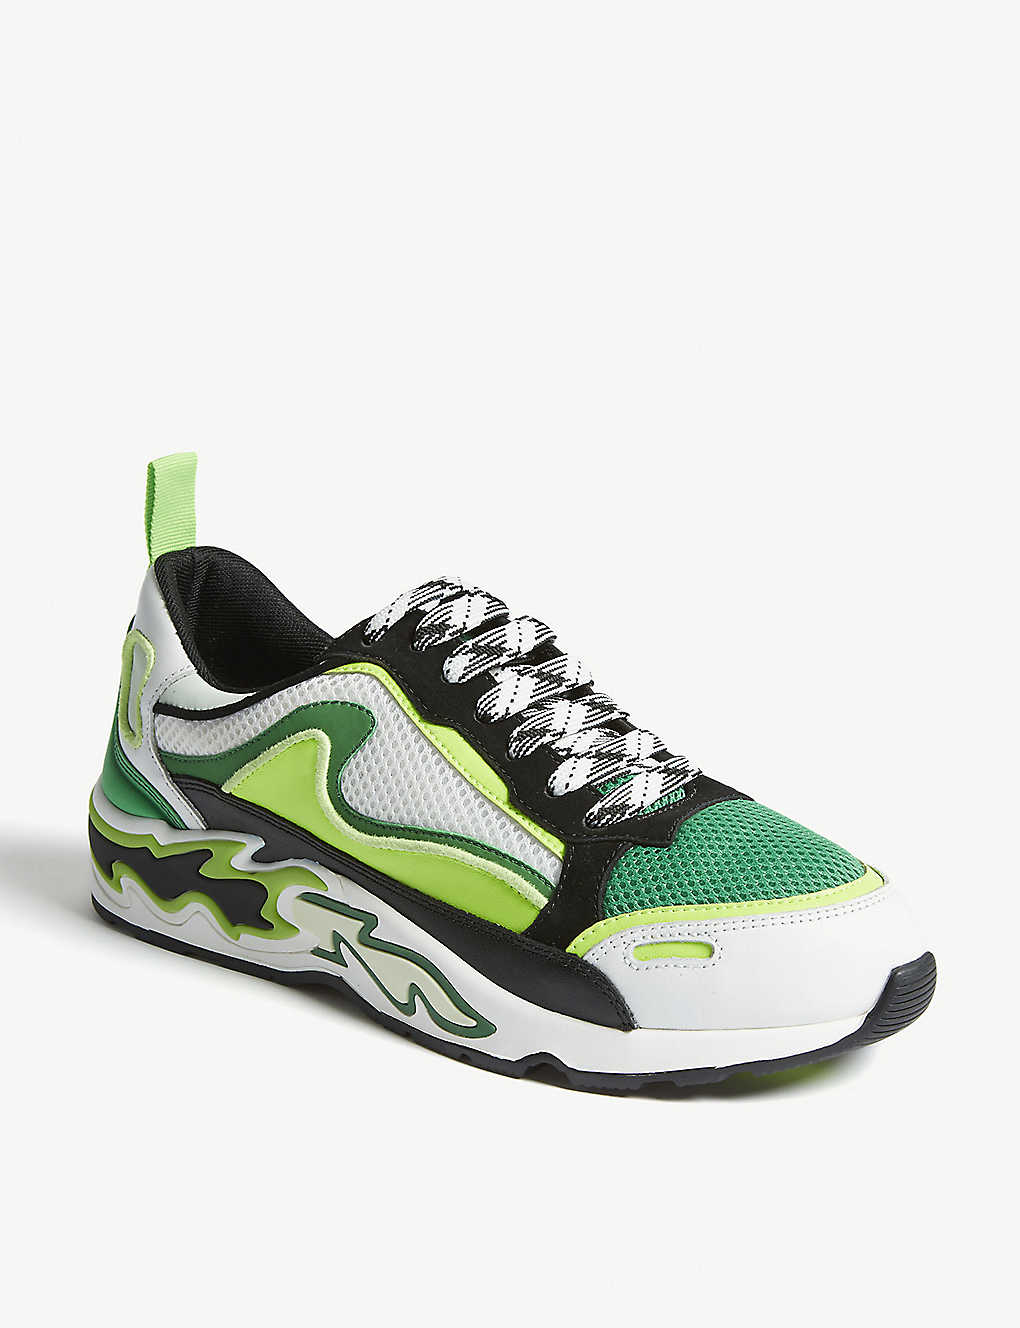 b2f77c4bb5 ... Flame trainers - Vert fluo ...